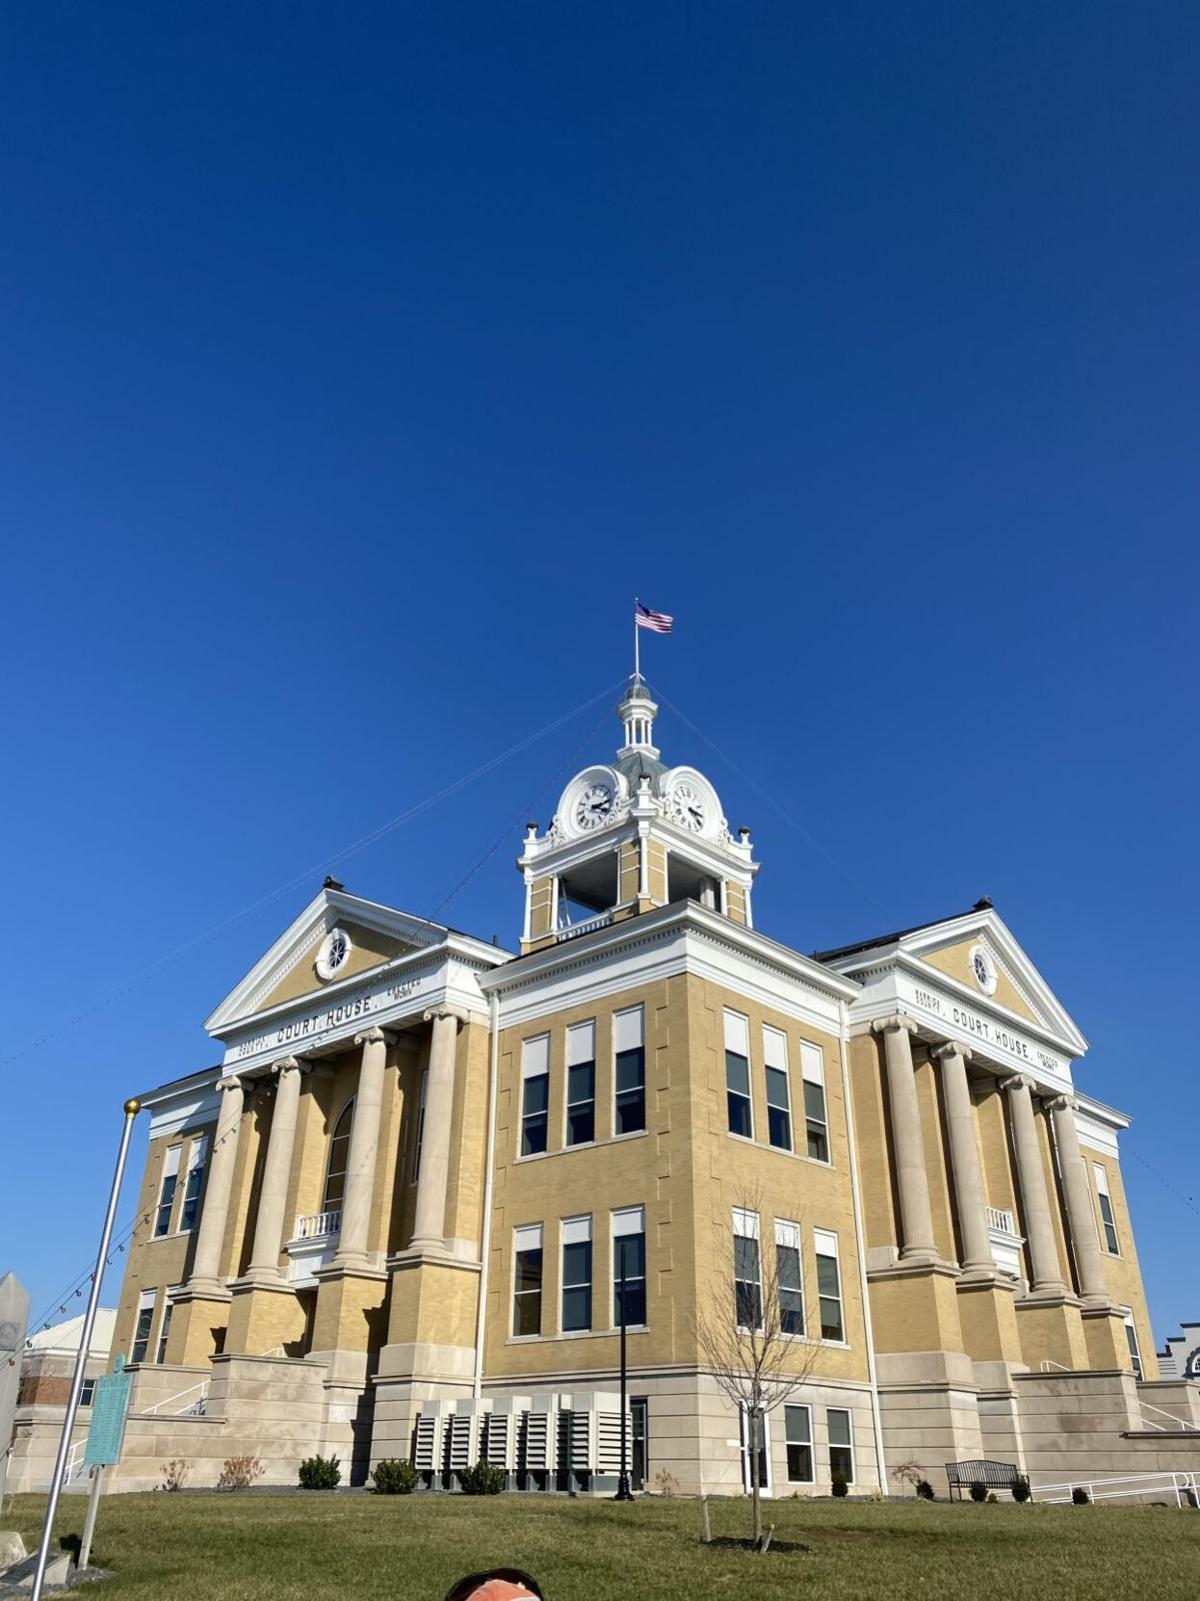 Local man helps flag return to Courthouse